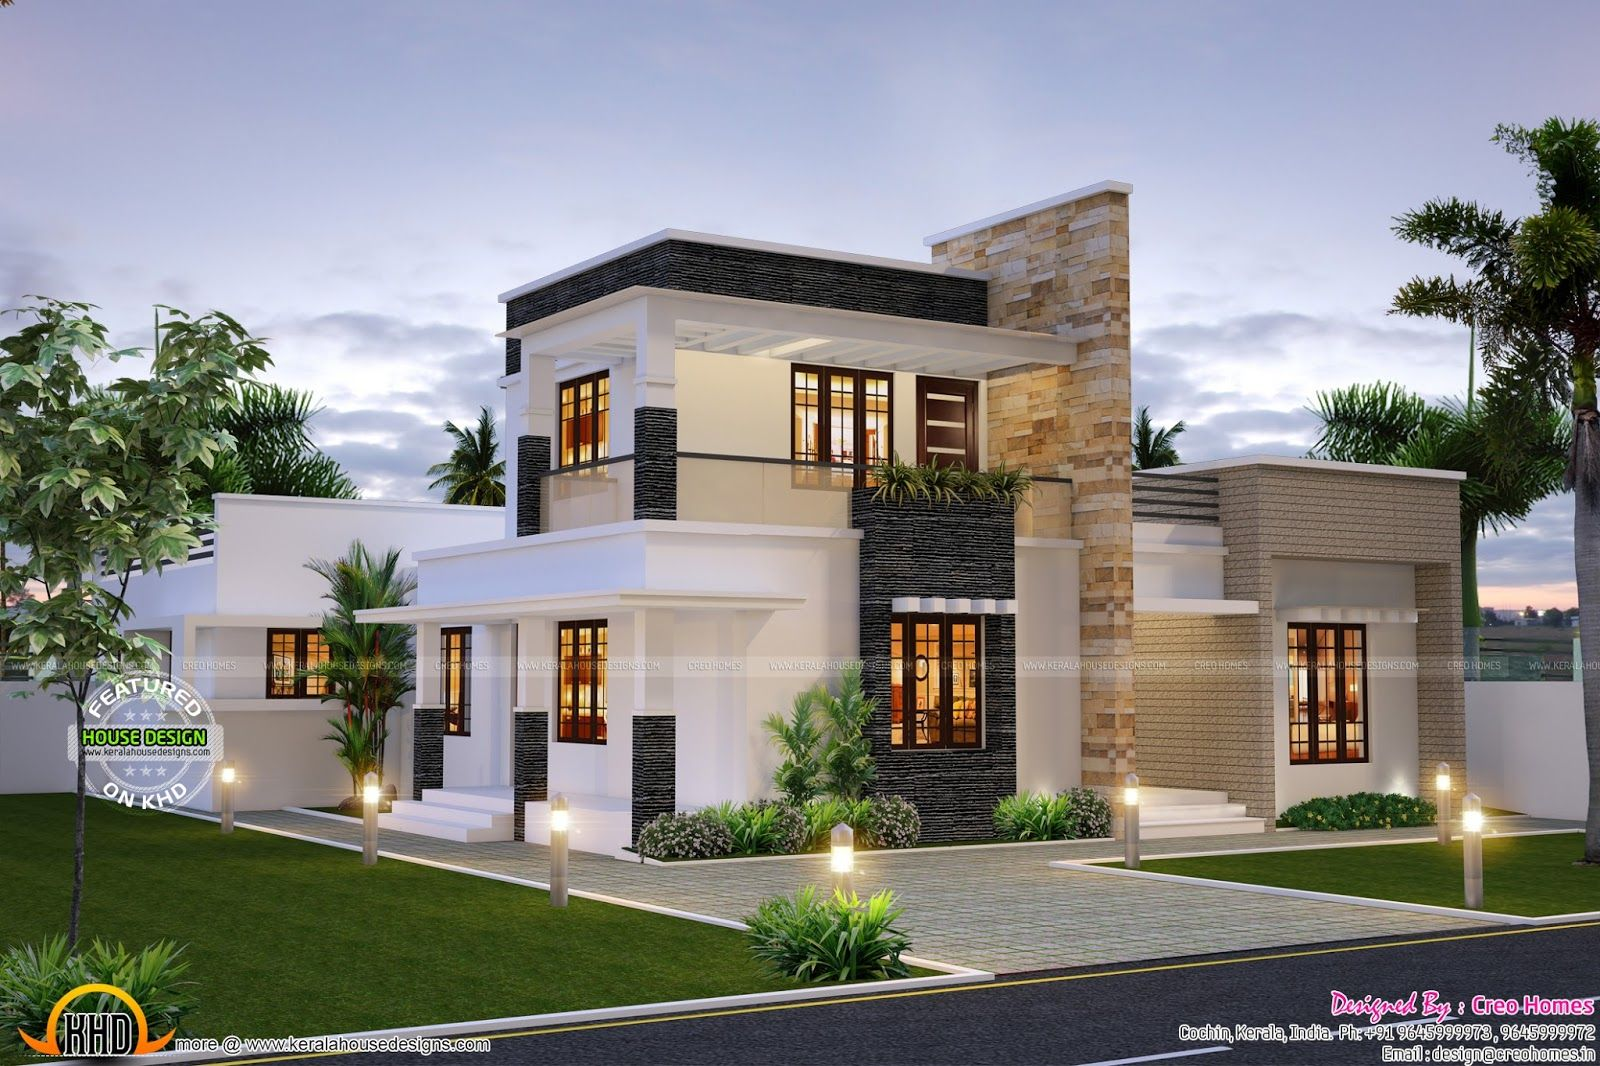 Cute Contemporary Home Flat Roof House Modern House Plans Small House Design